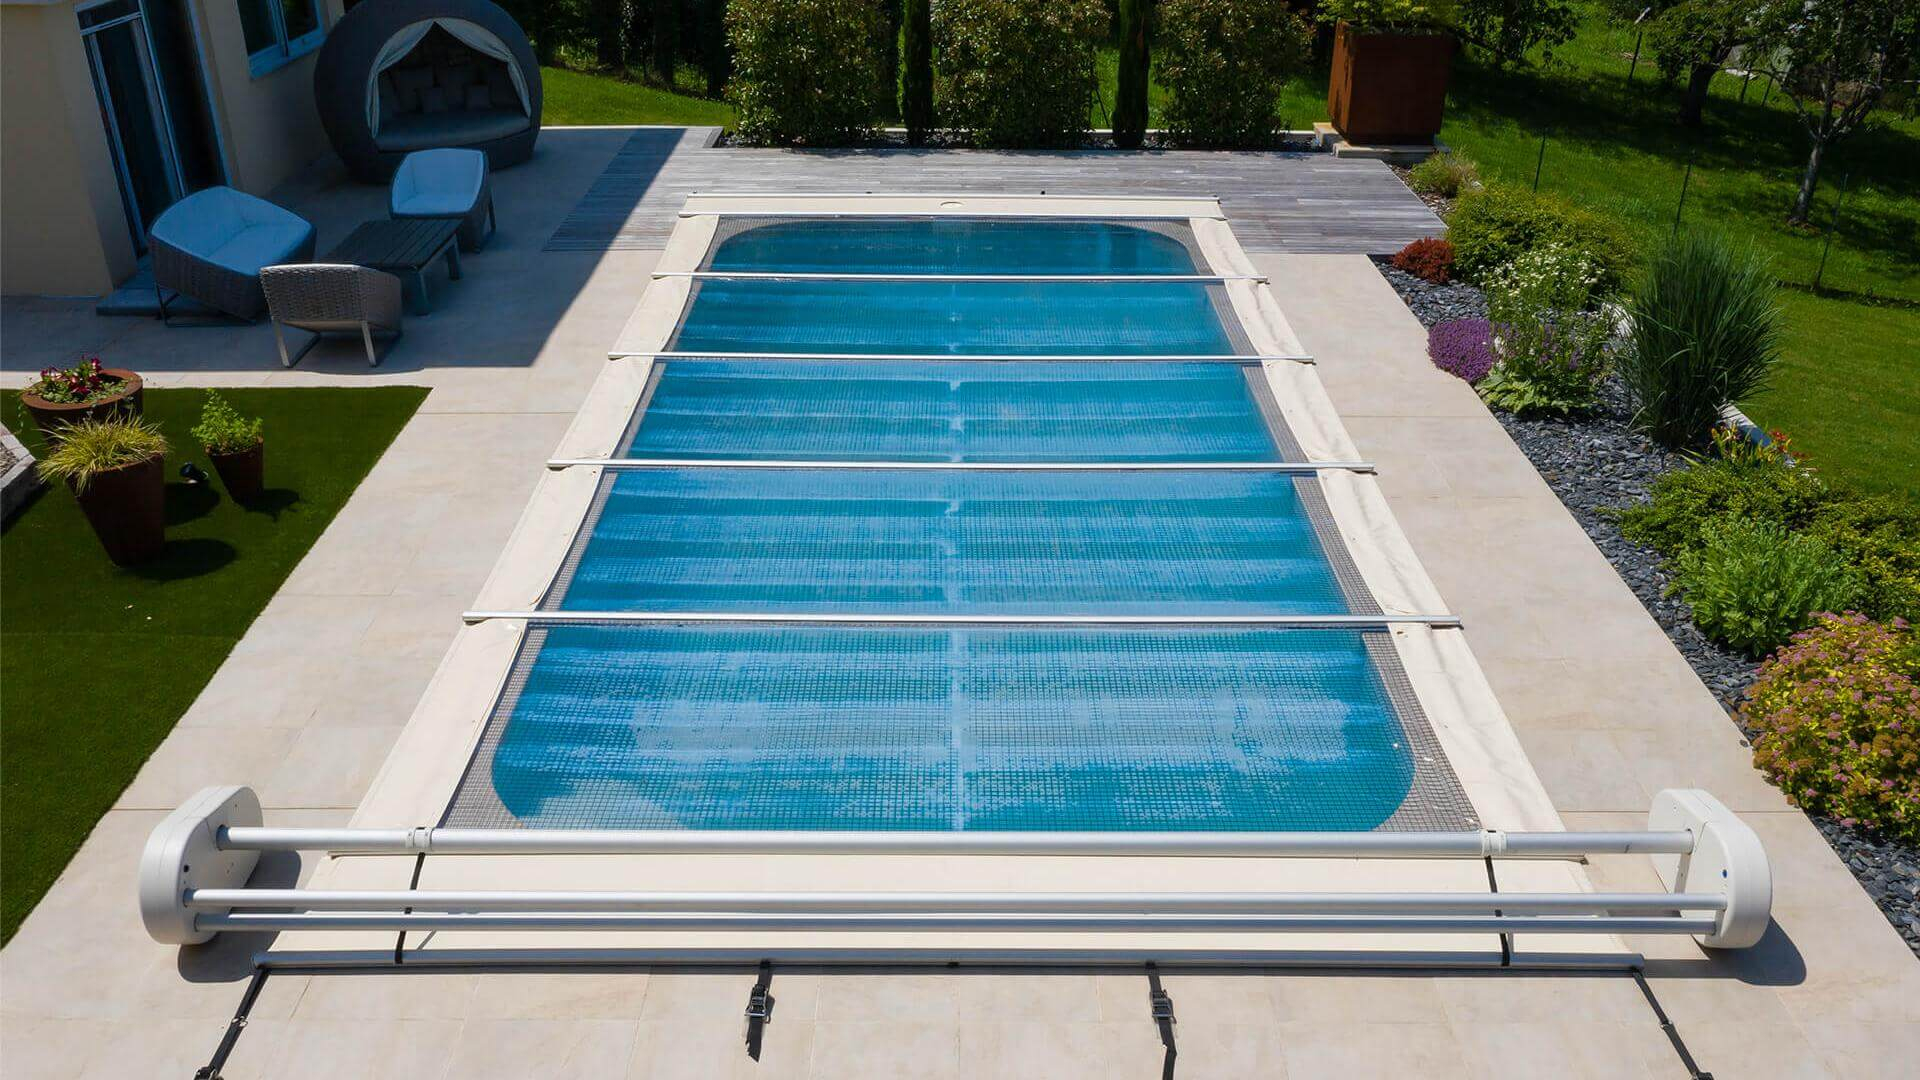 Constructor And Manufacturer Of Kit Pools | Waterair ... encequiconcerne Piscine En Kit Beton